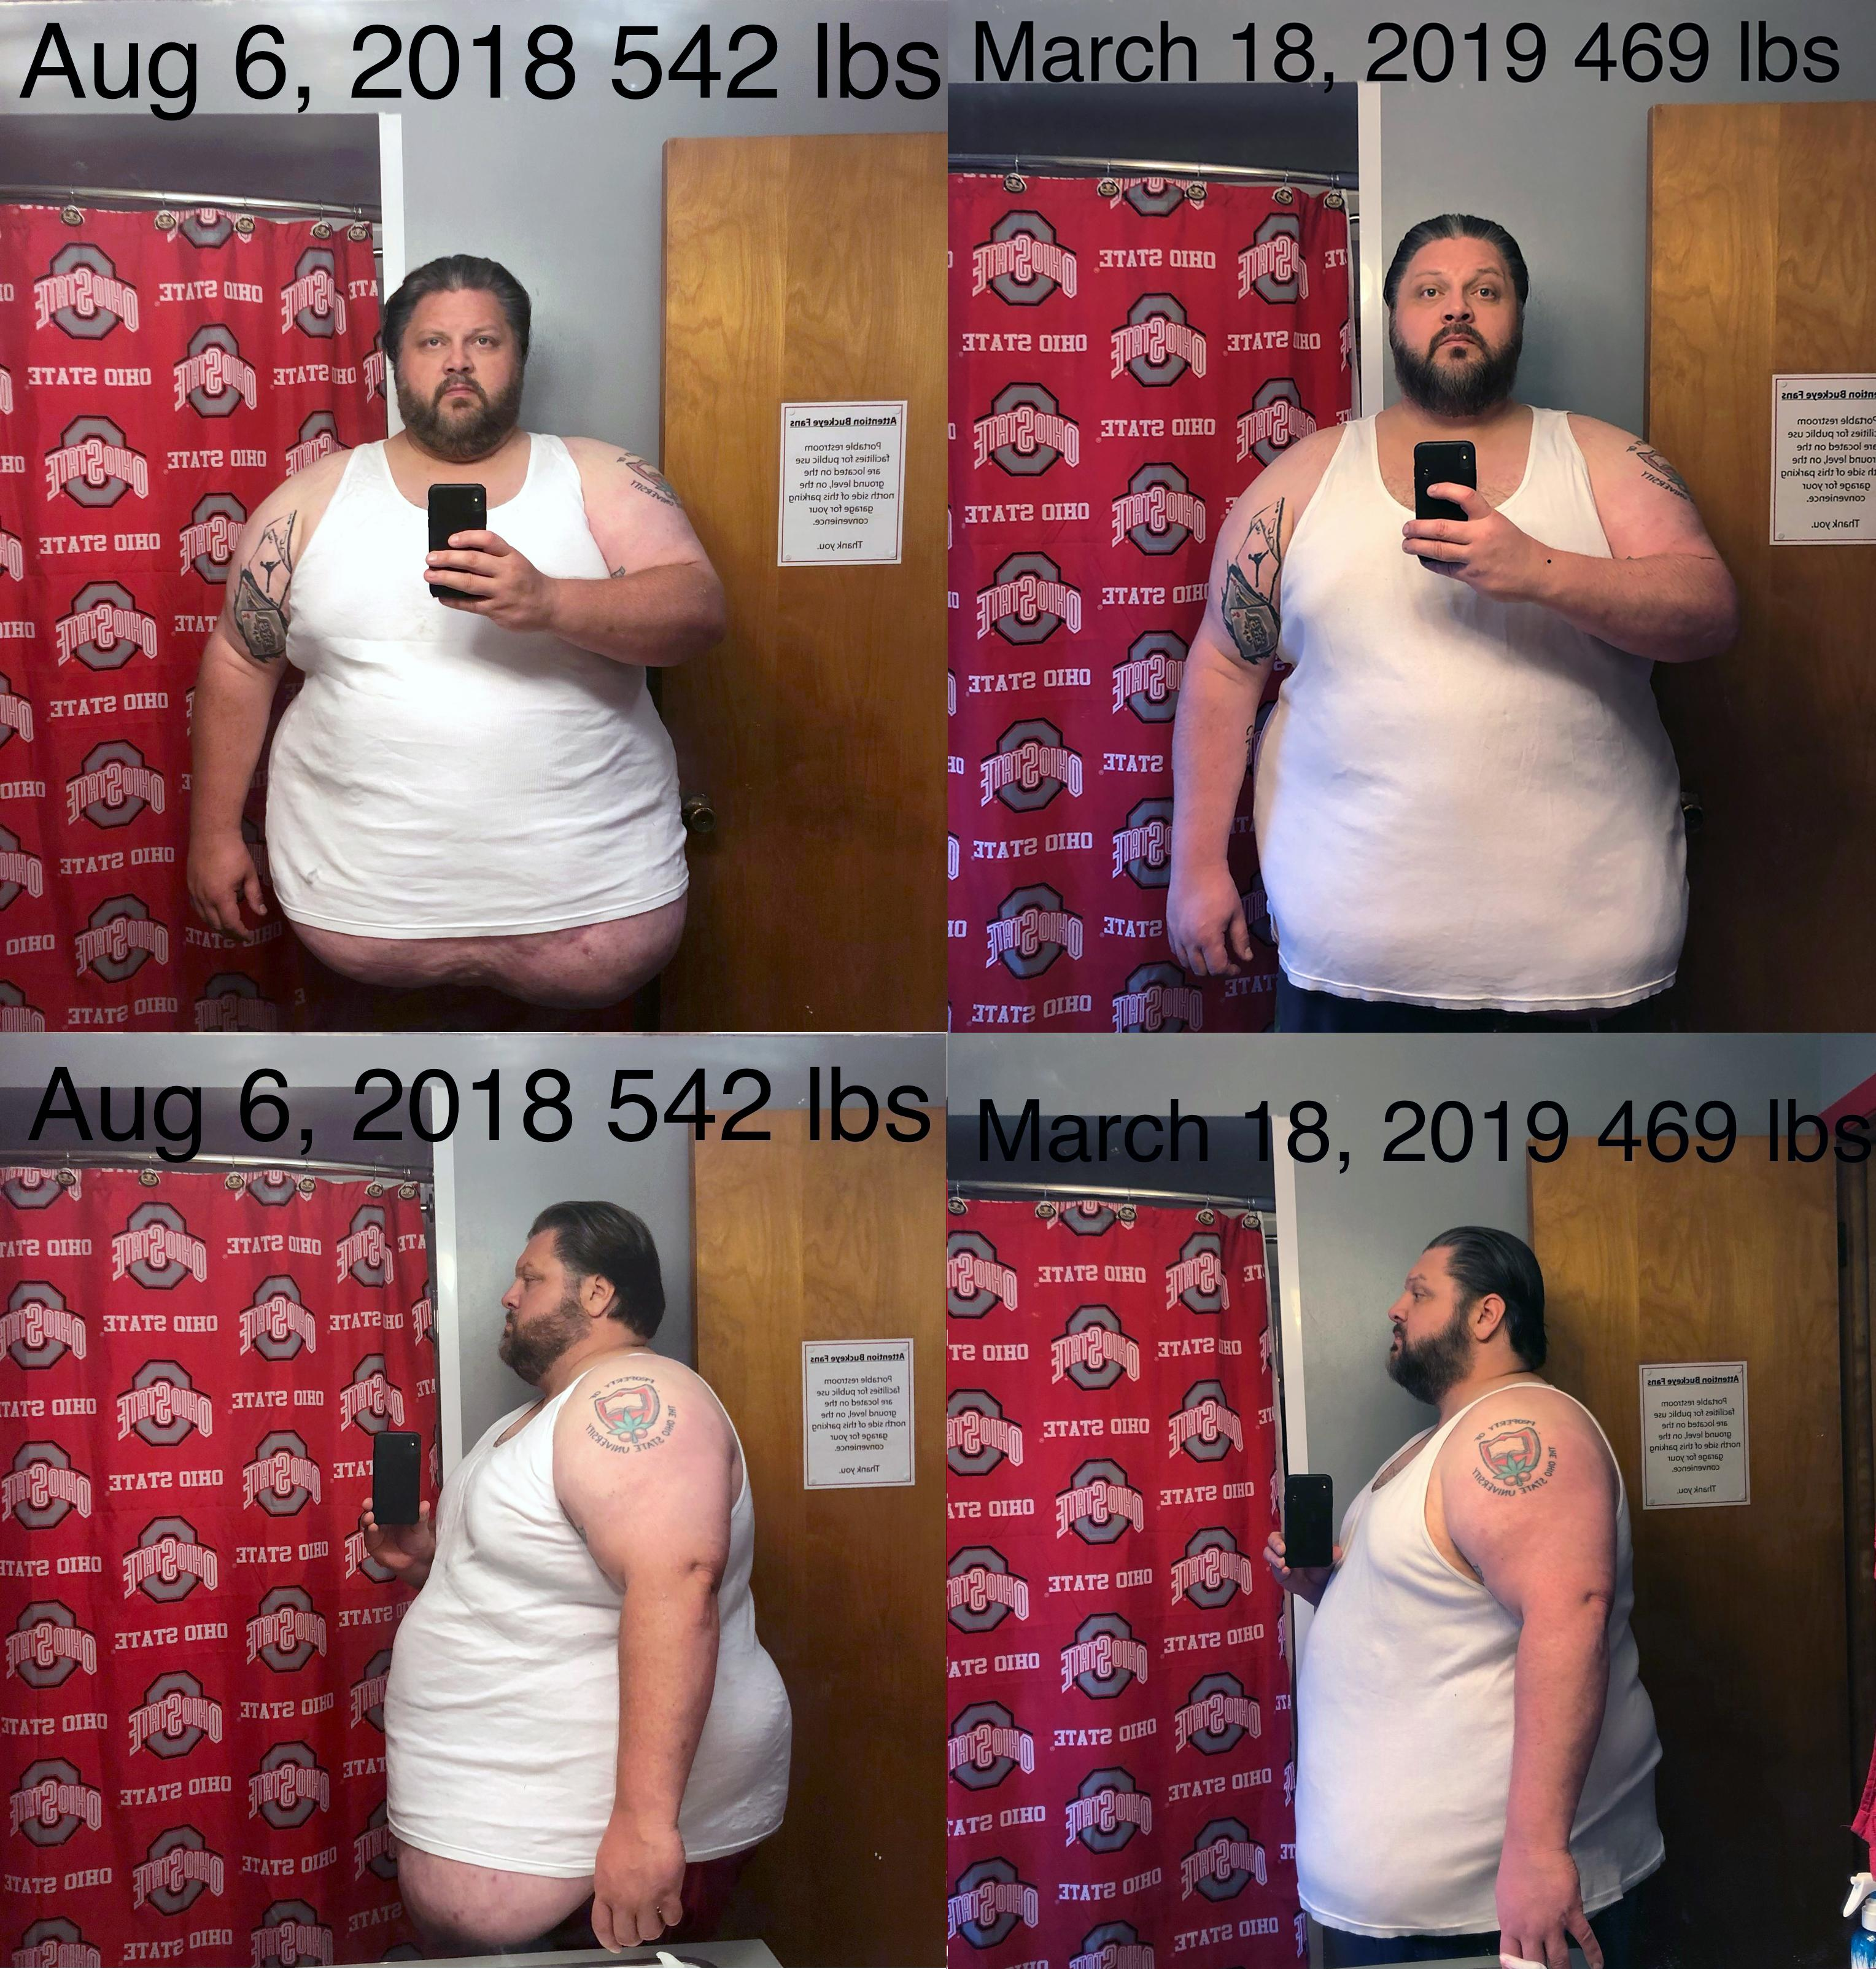 6 foot 1 Male 73 lbs Fat Loss Before and After 542 lbs to 469 lbs